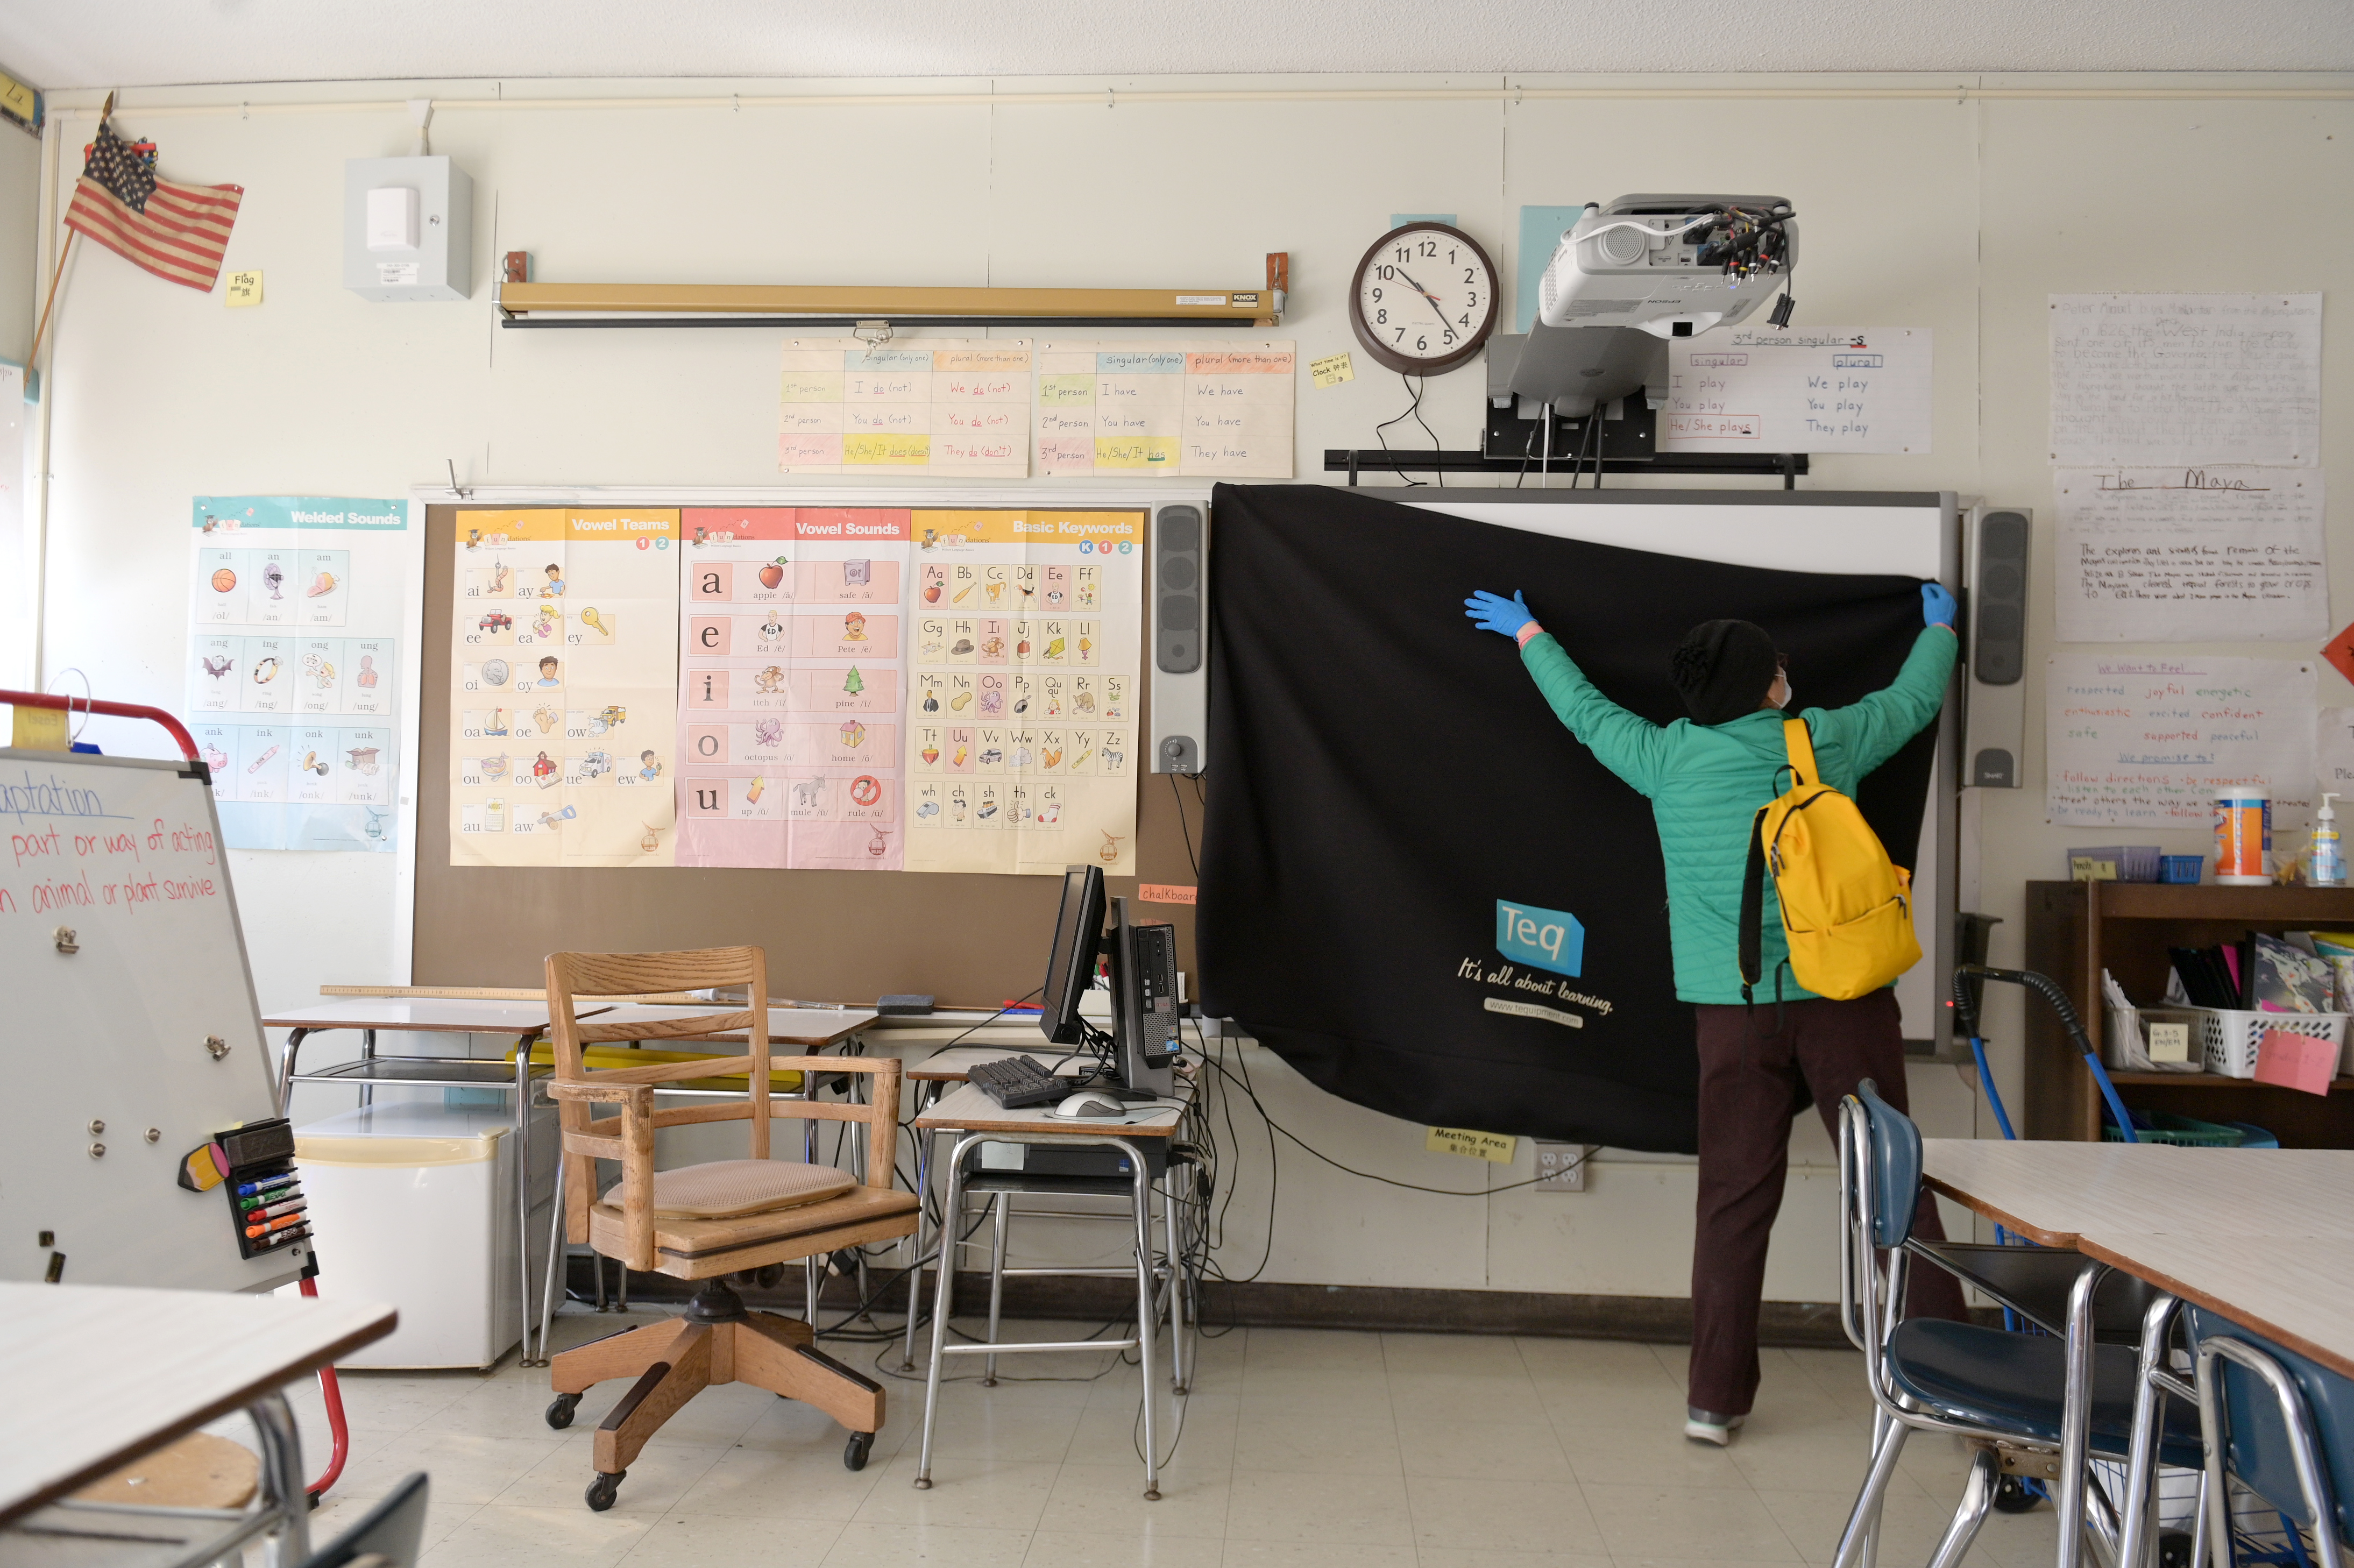 NEW YORK, NEW YORK - MAY 14: A teacher collects supplies needed to continue remote teaching through the end of the school year at Yung Wing School P.S. 124 on May 14, 2020 in New York City. (Photo by Michael Loccisano/Getty Images)